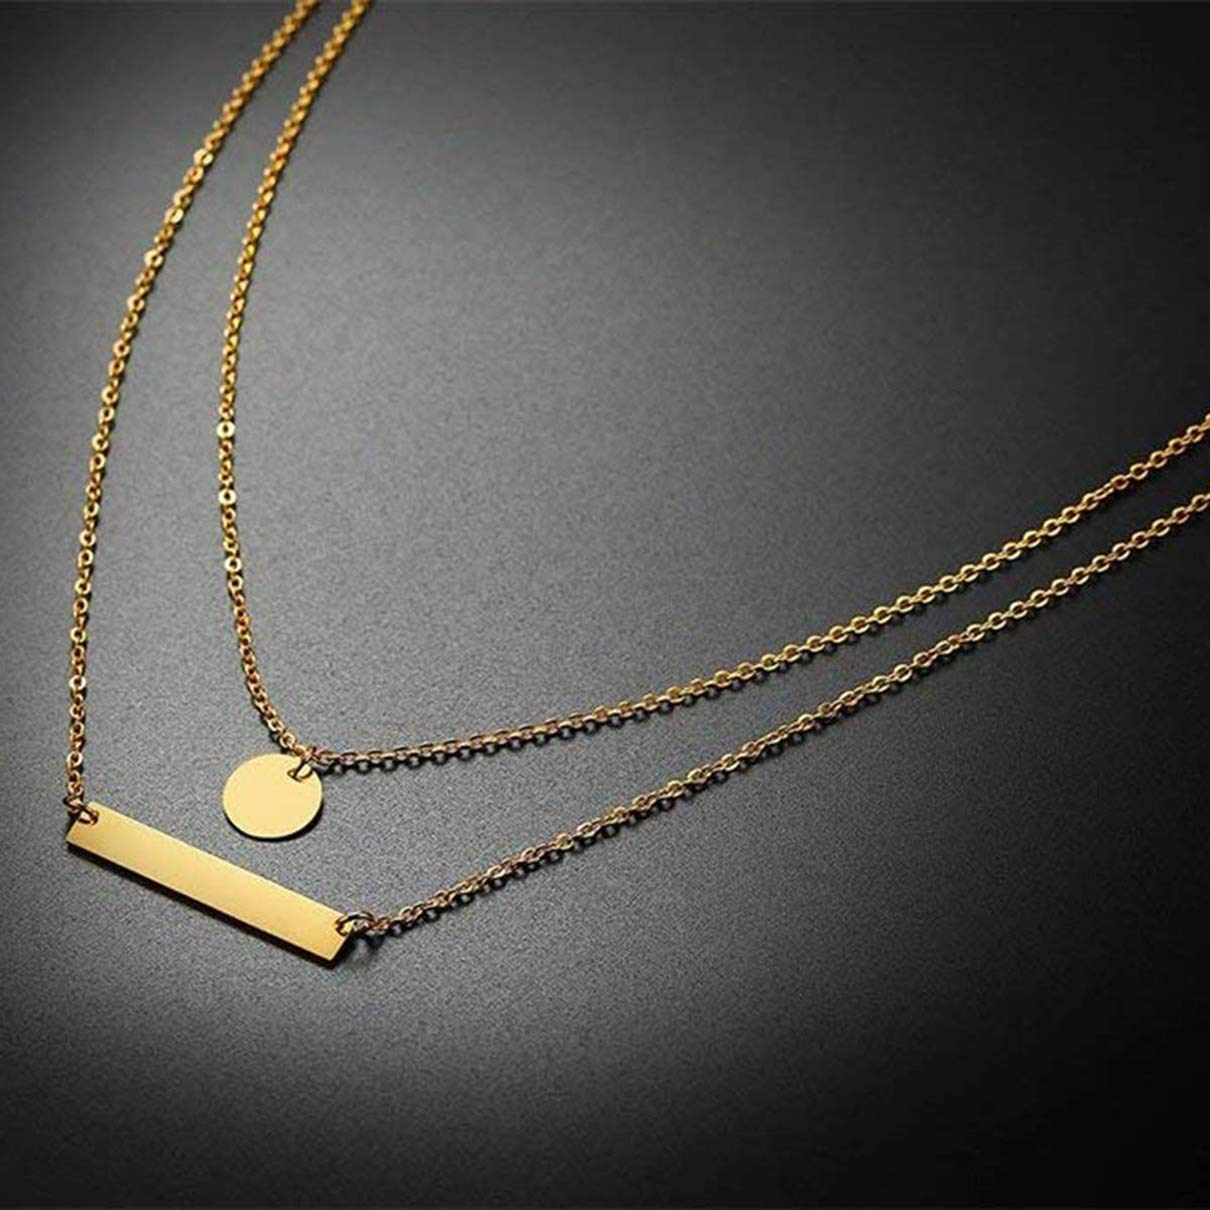 YINSHIFU Custom Name Bar Necklace Engraved Personalized Pendant Necklace Plated with 18K Gold Rose Gold Silver